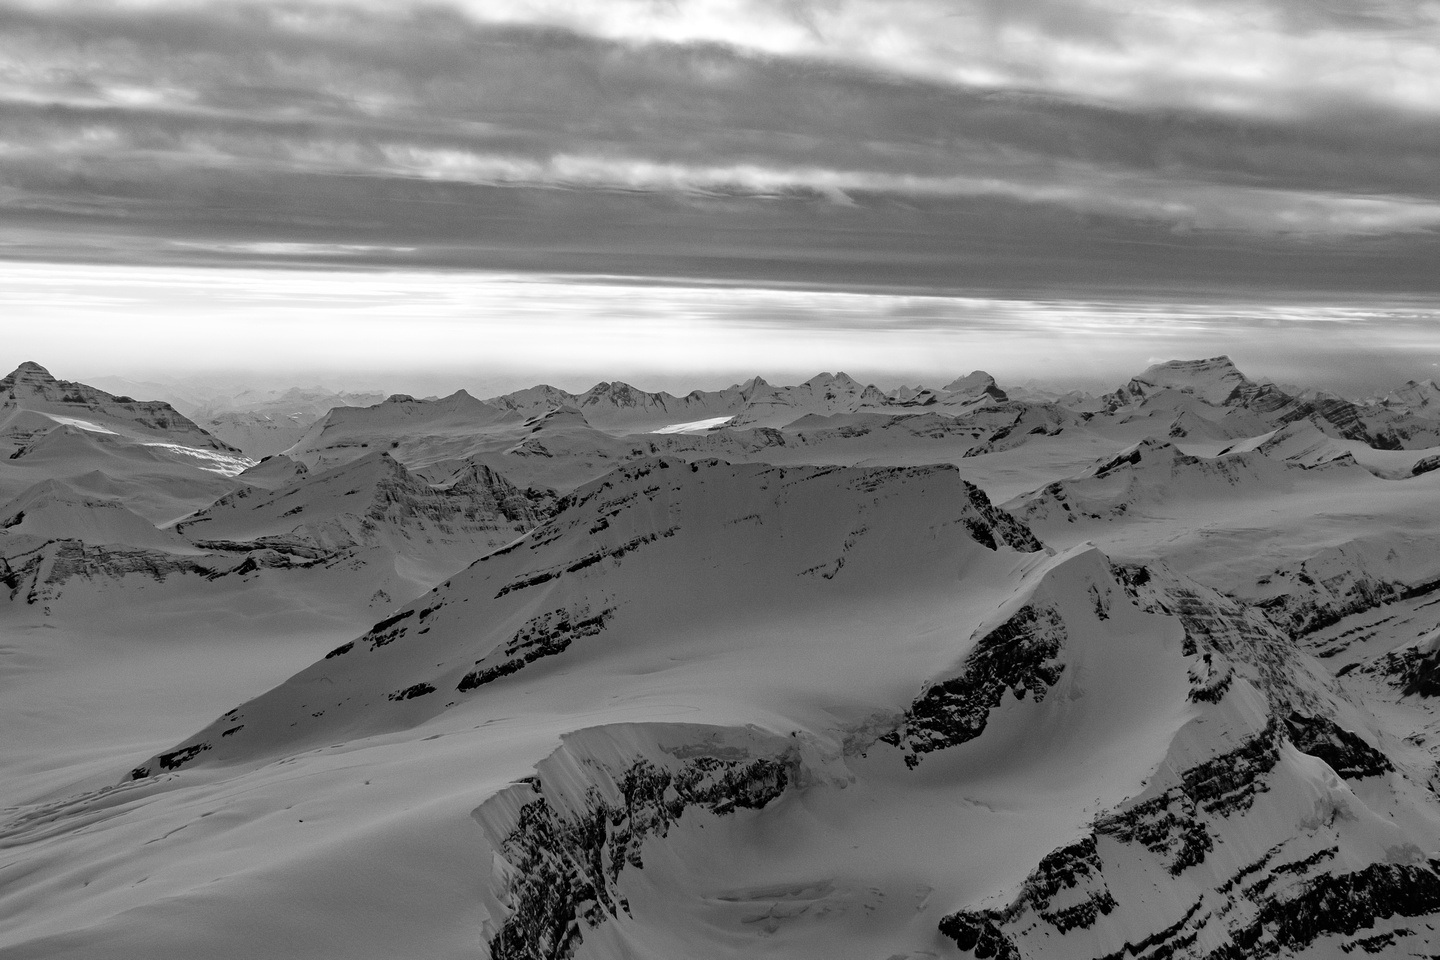 The long SW ridge of King Edward rises from the icefield to the summit at lower left to center with the east face at center